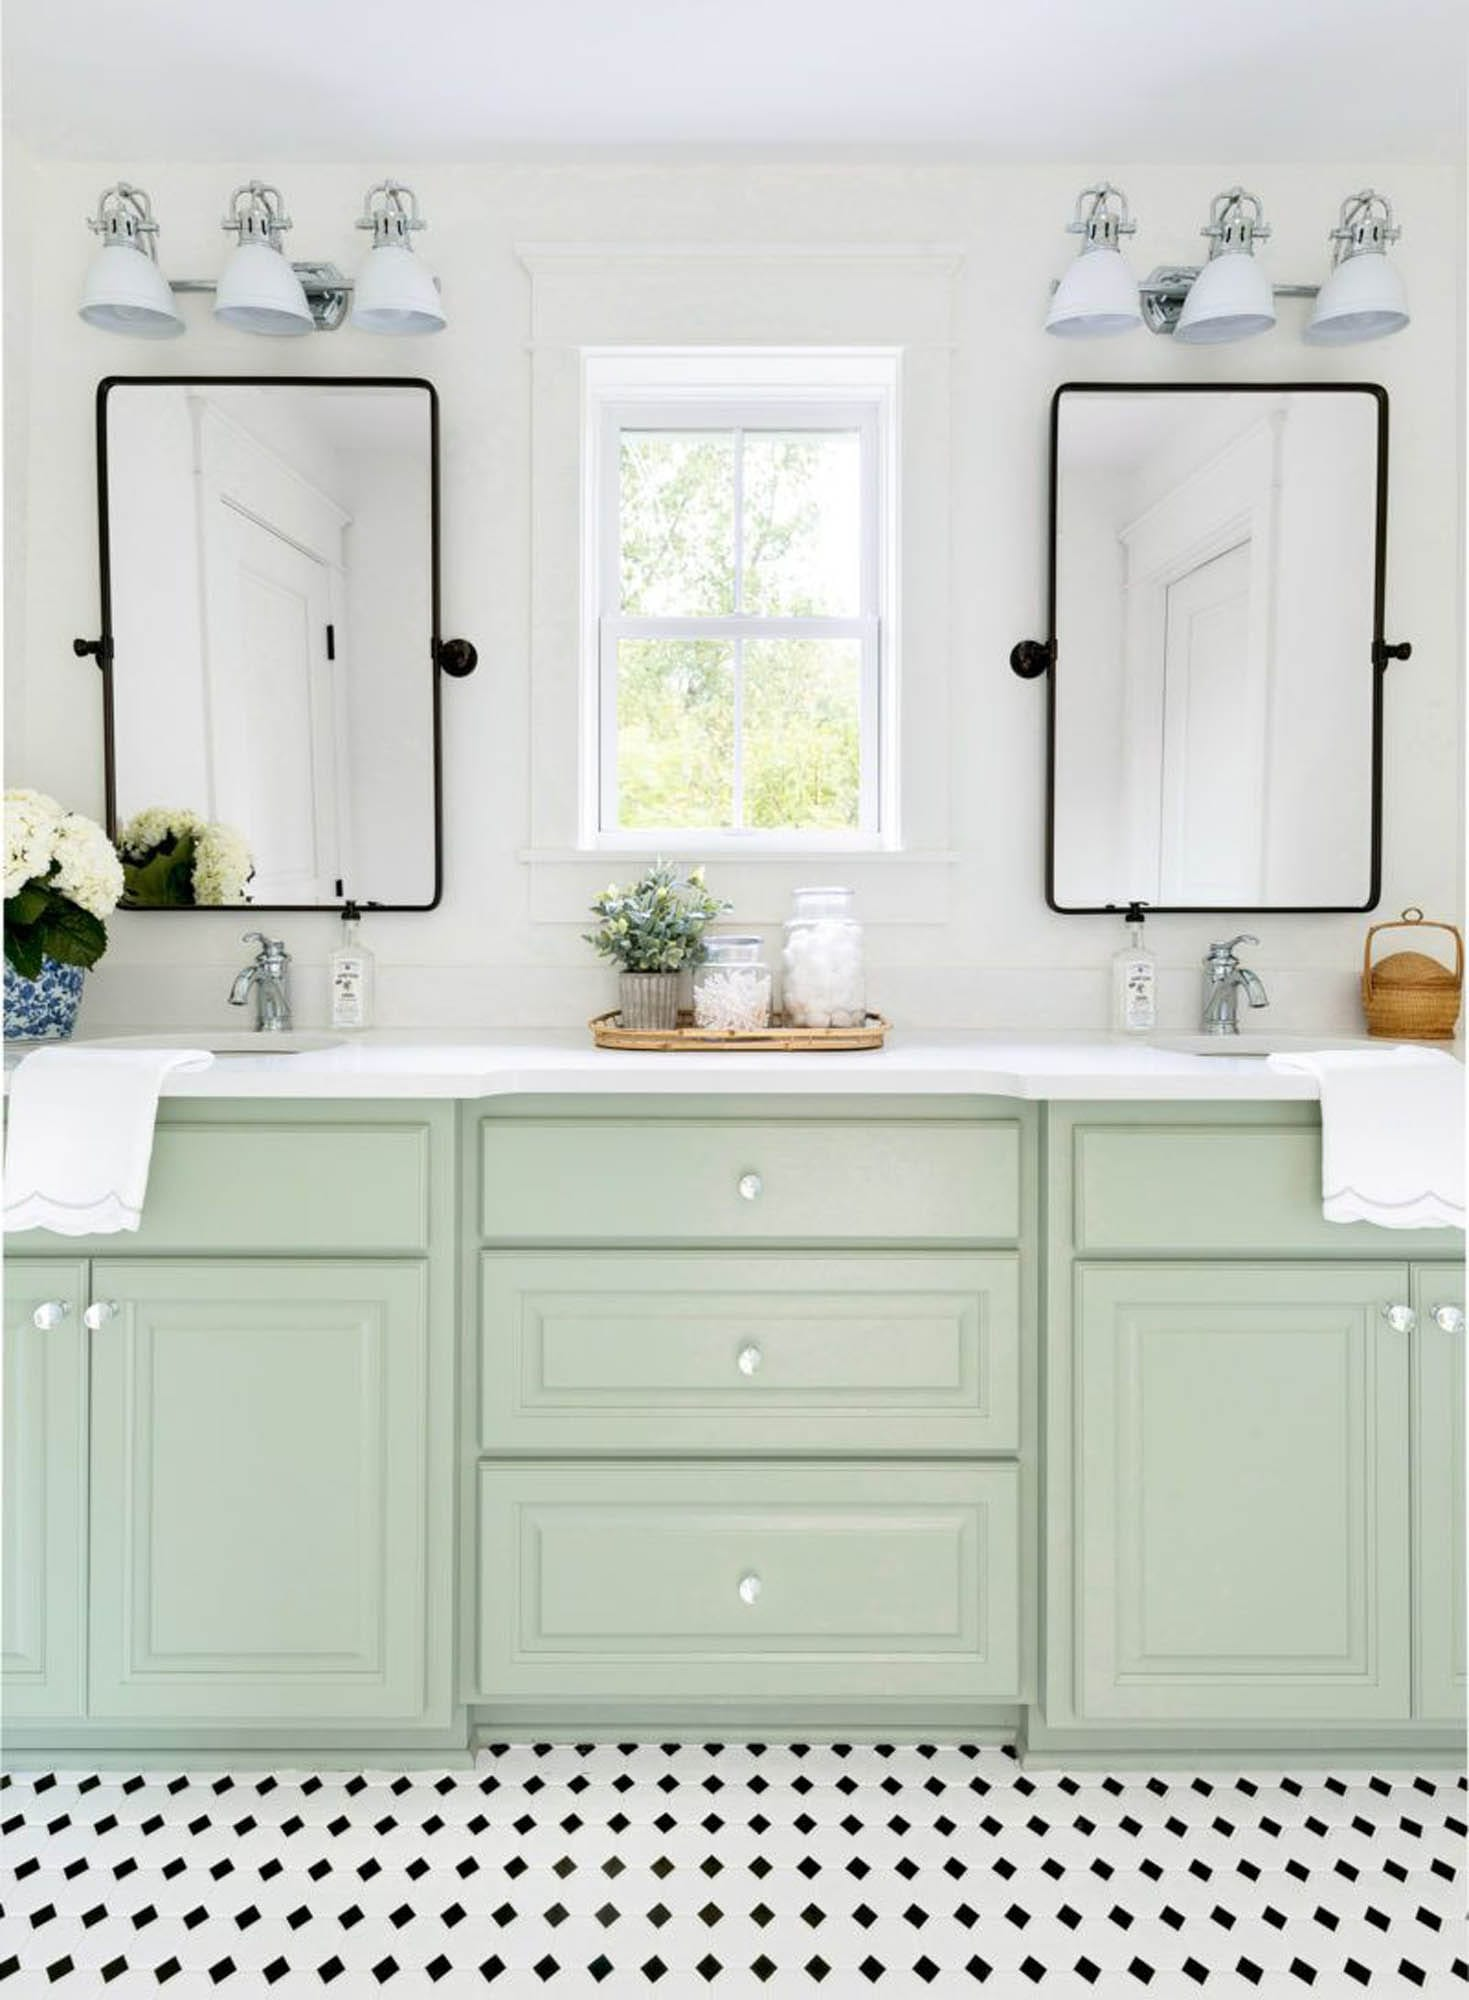 Bathroom with pale green cabinetry